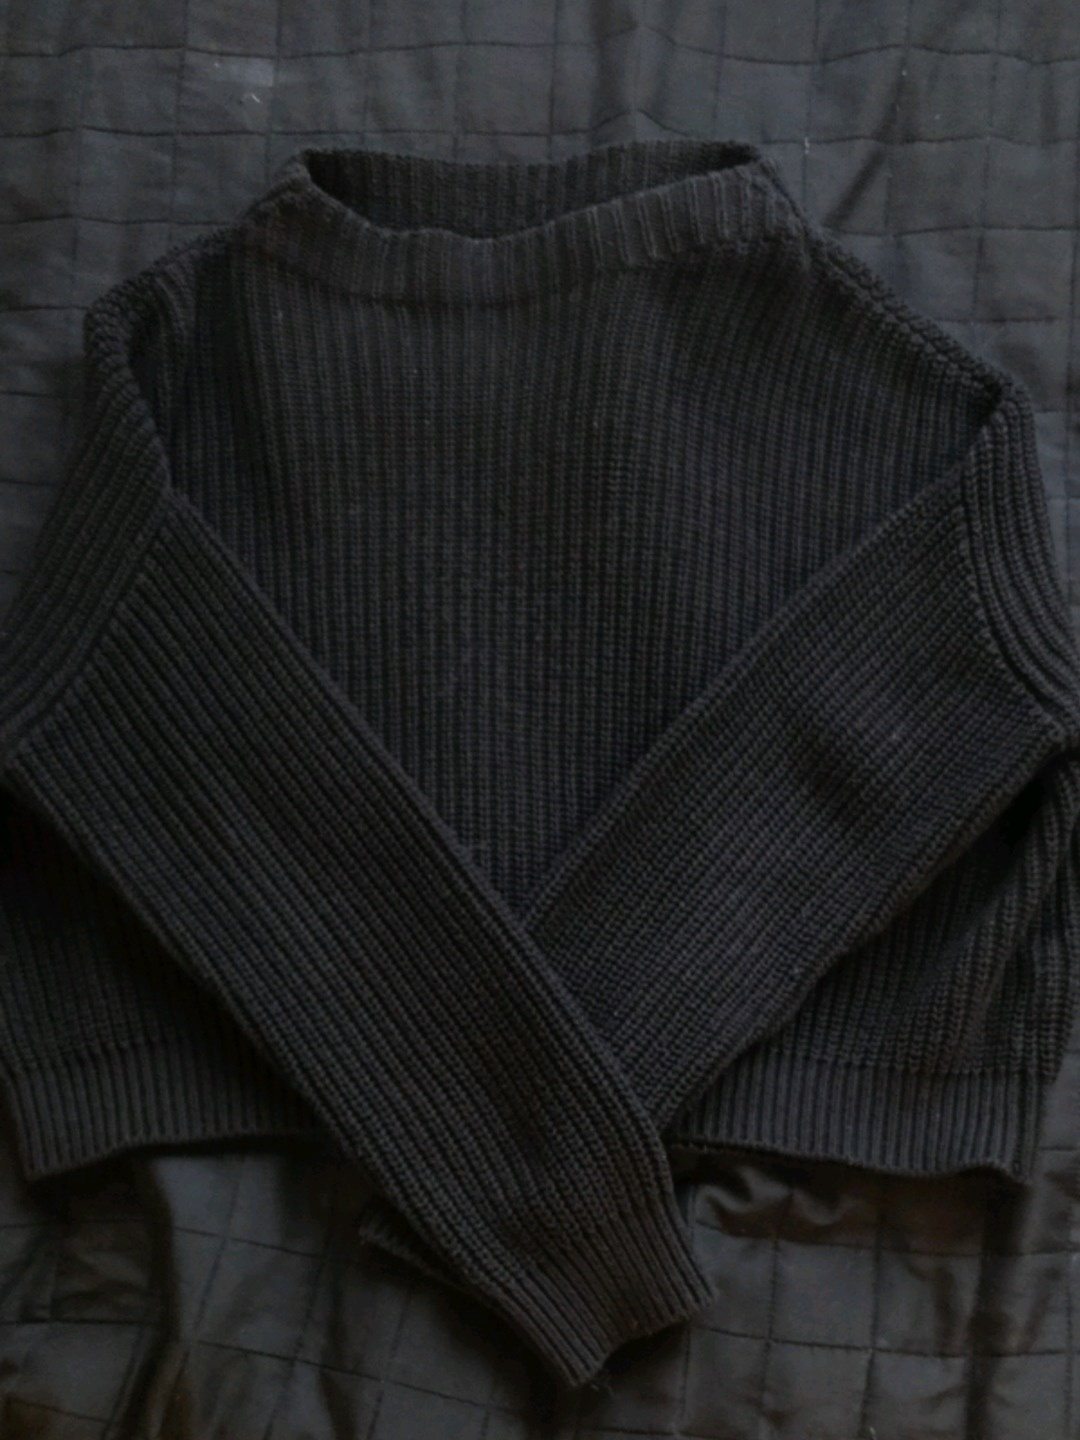 Women's jumpers & cardigans - FB SISTER photo 1